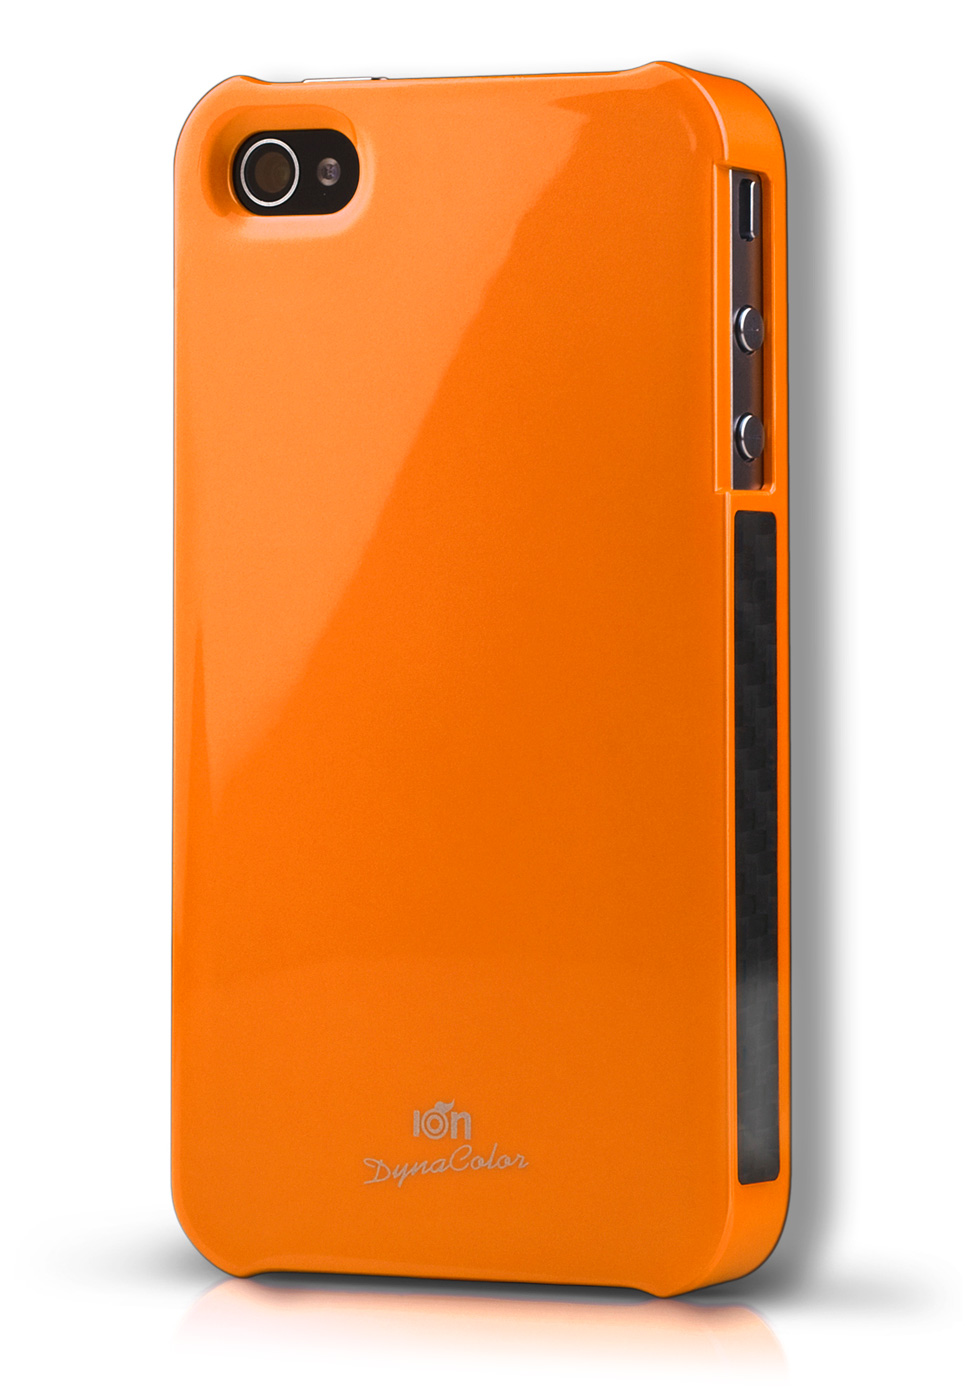 Orange DynaColor Lacquer iPhone 4S Case